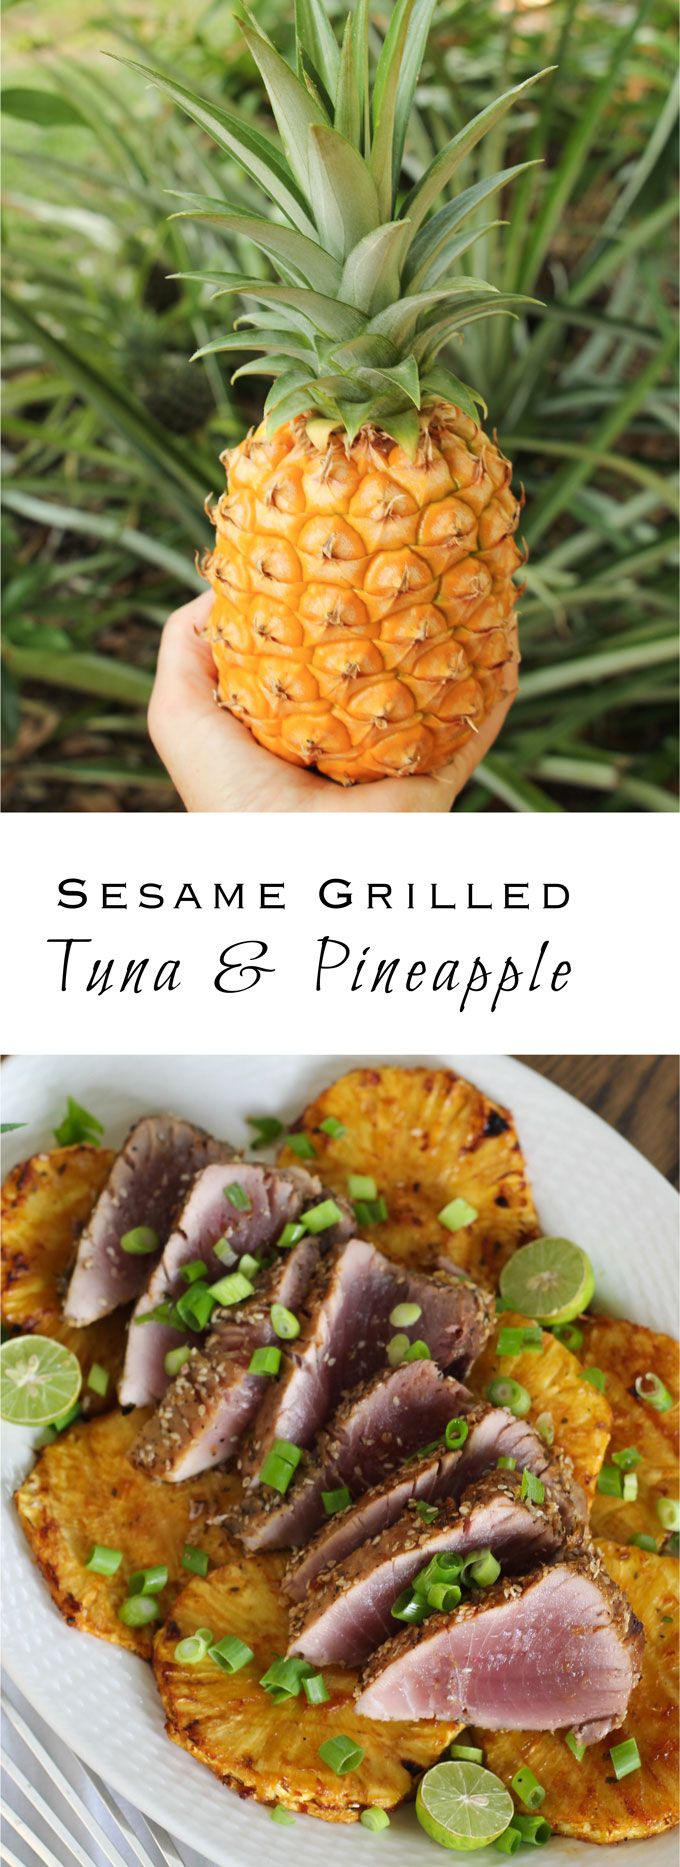 Sesame Grilled Blackfin Tuna with Pineapple and Lime